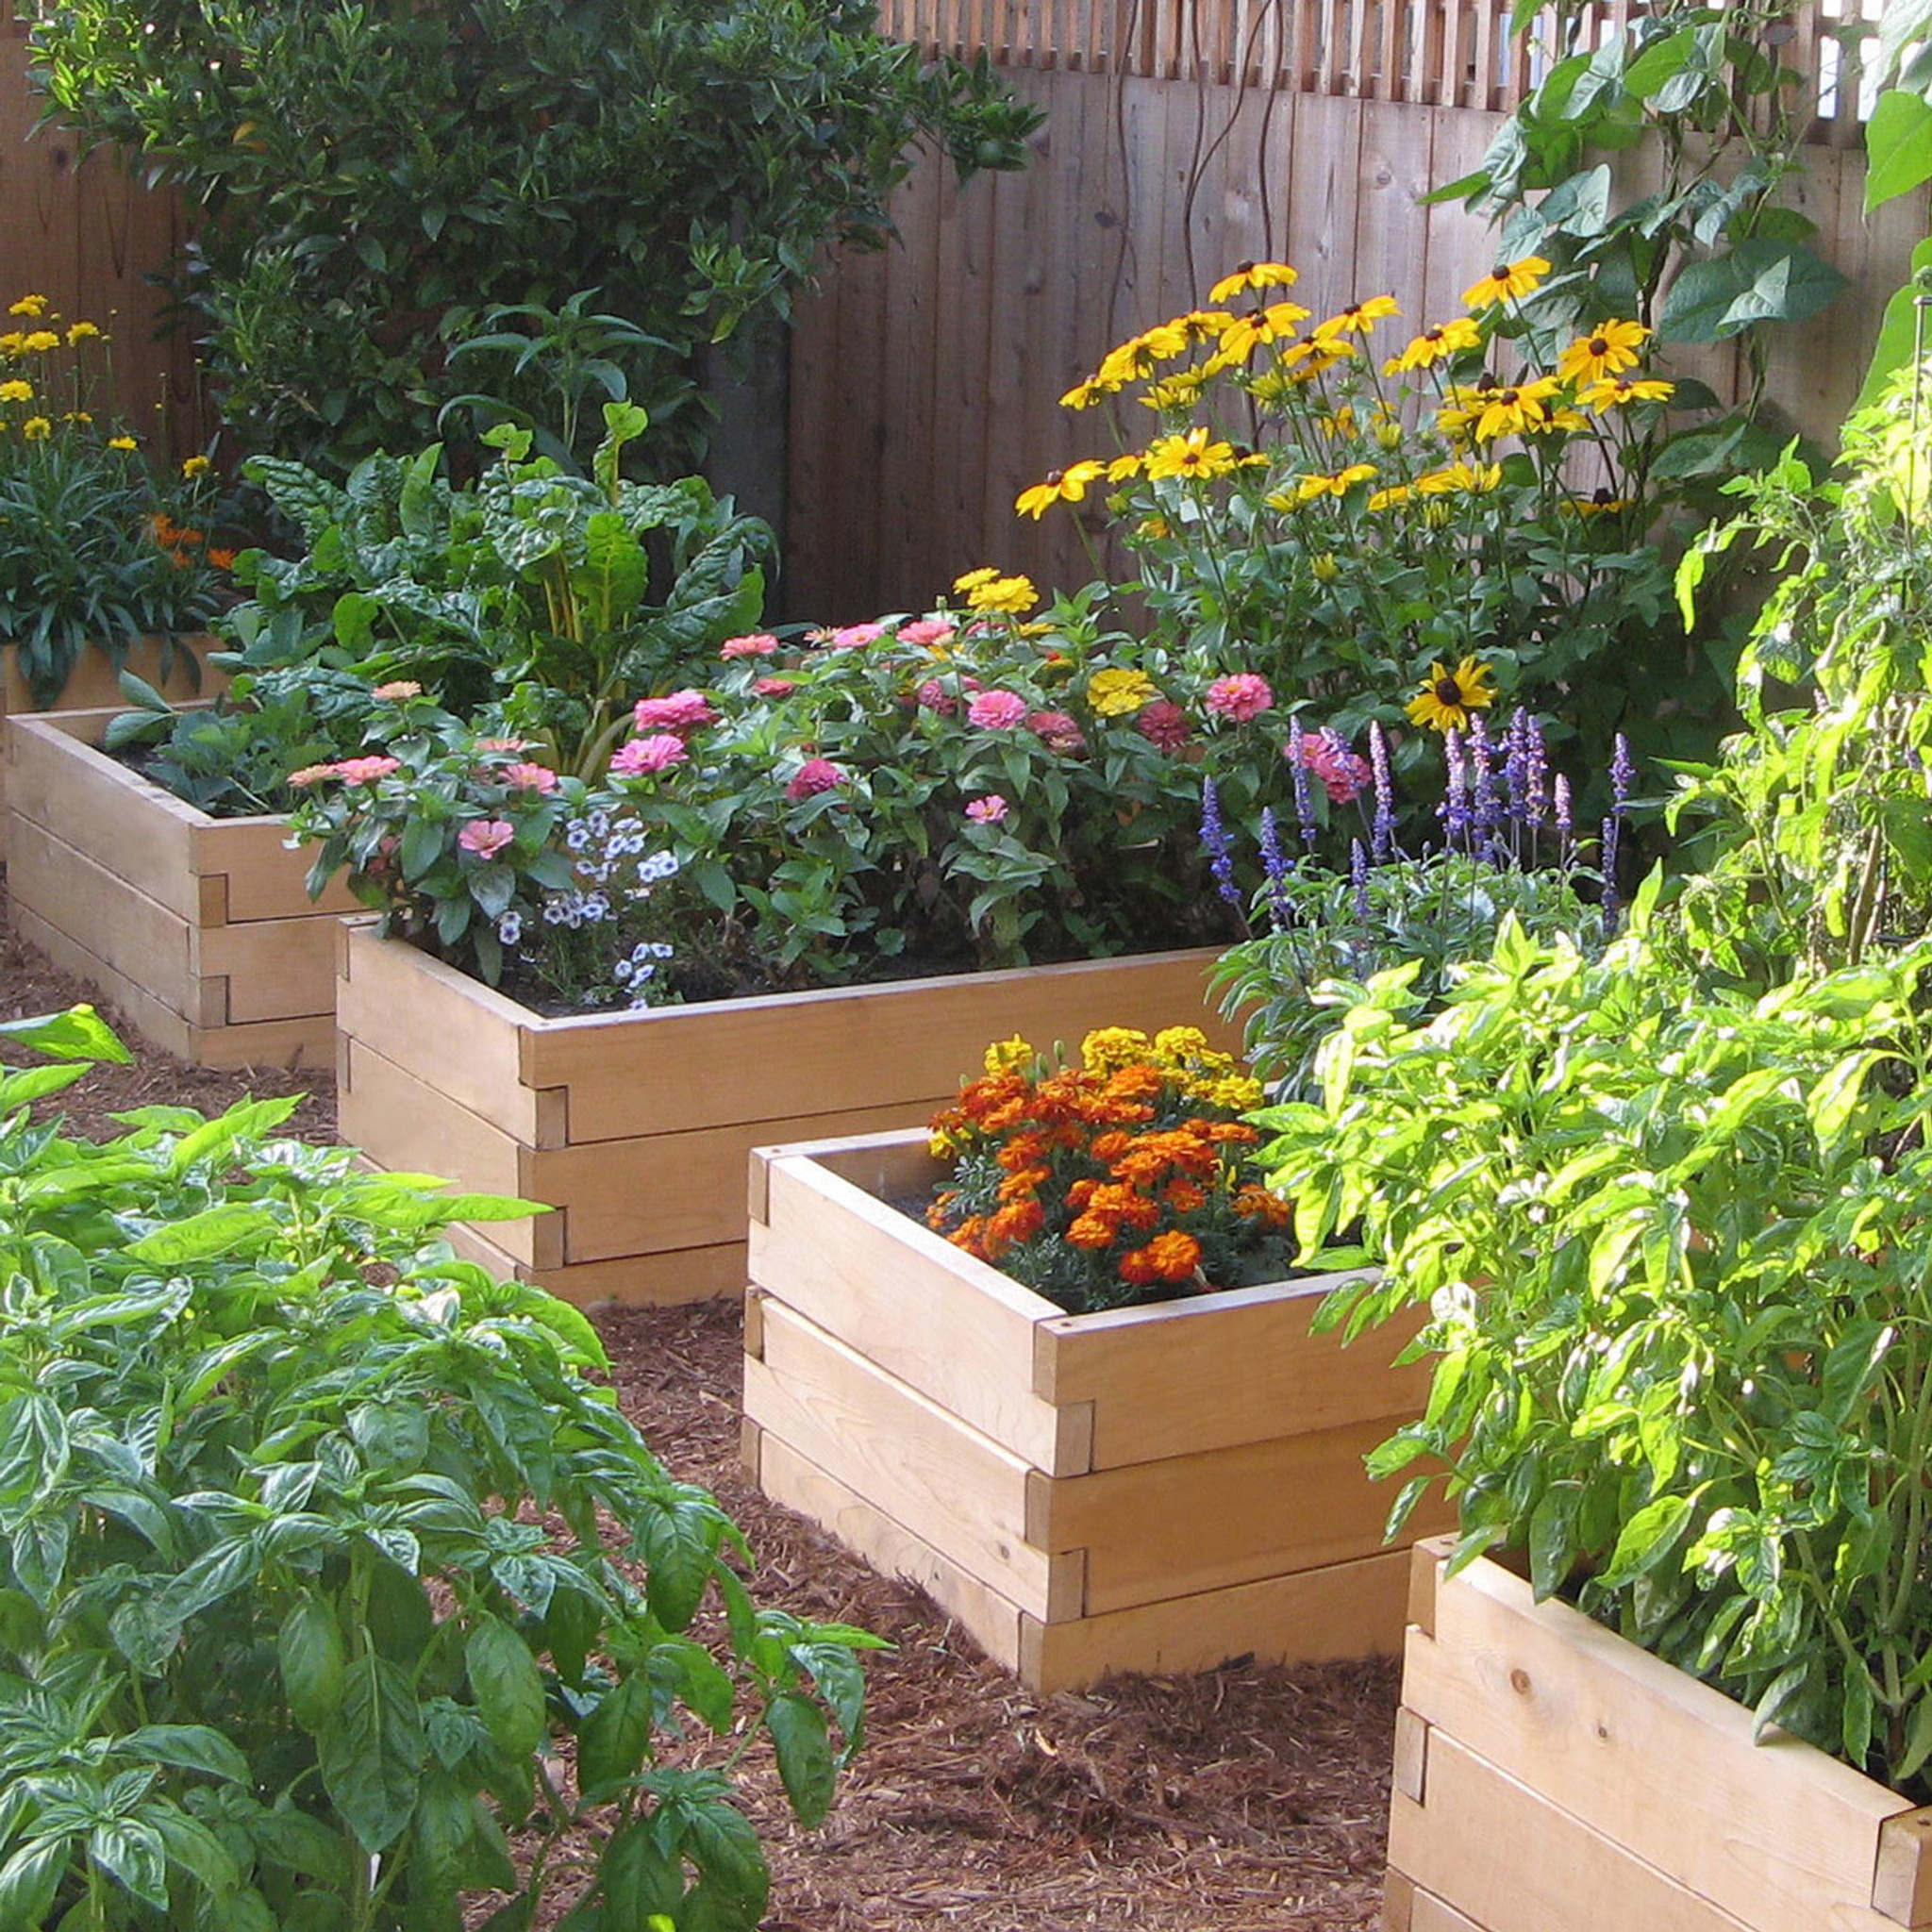 Natural Cedar Raised Garden Beds on raised flower beds, raised succulent garden, raised water garden, raised stone garden, raised tree garden, raised butterfly garden, raised shade garden, raised garden plants, raised berry garden, raised cactus garden, raised garden bed, raised container garden, raised rose garden, raised fire pit, raised rock garden, raised iris garden, raised herb garden, raised cottage garden, raised garden design, raised vegetable garden,